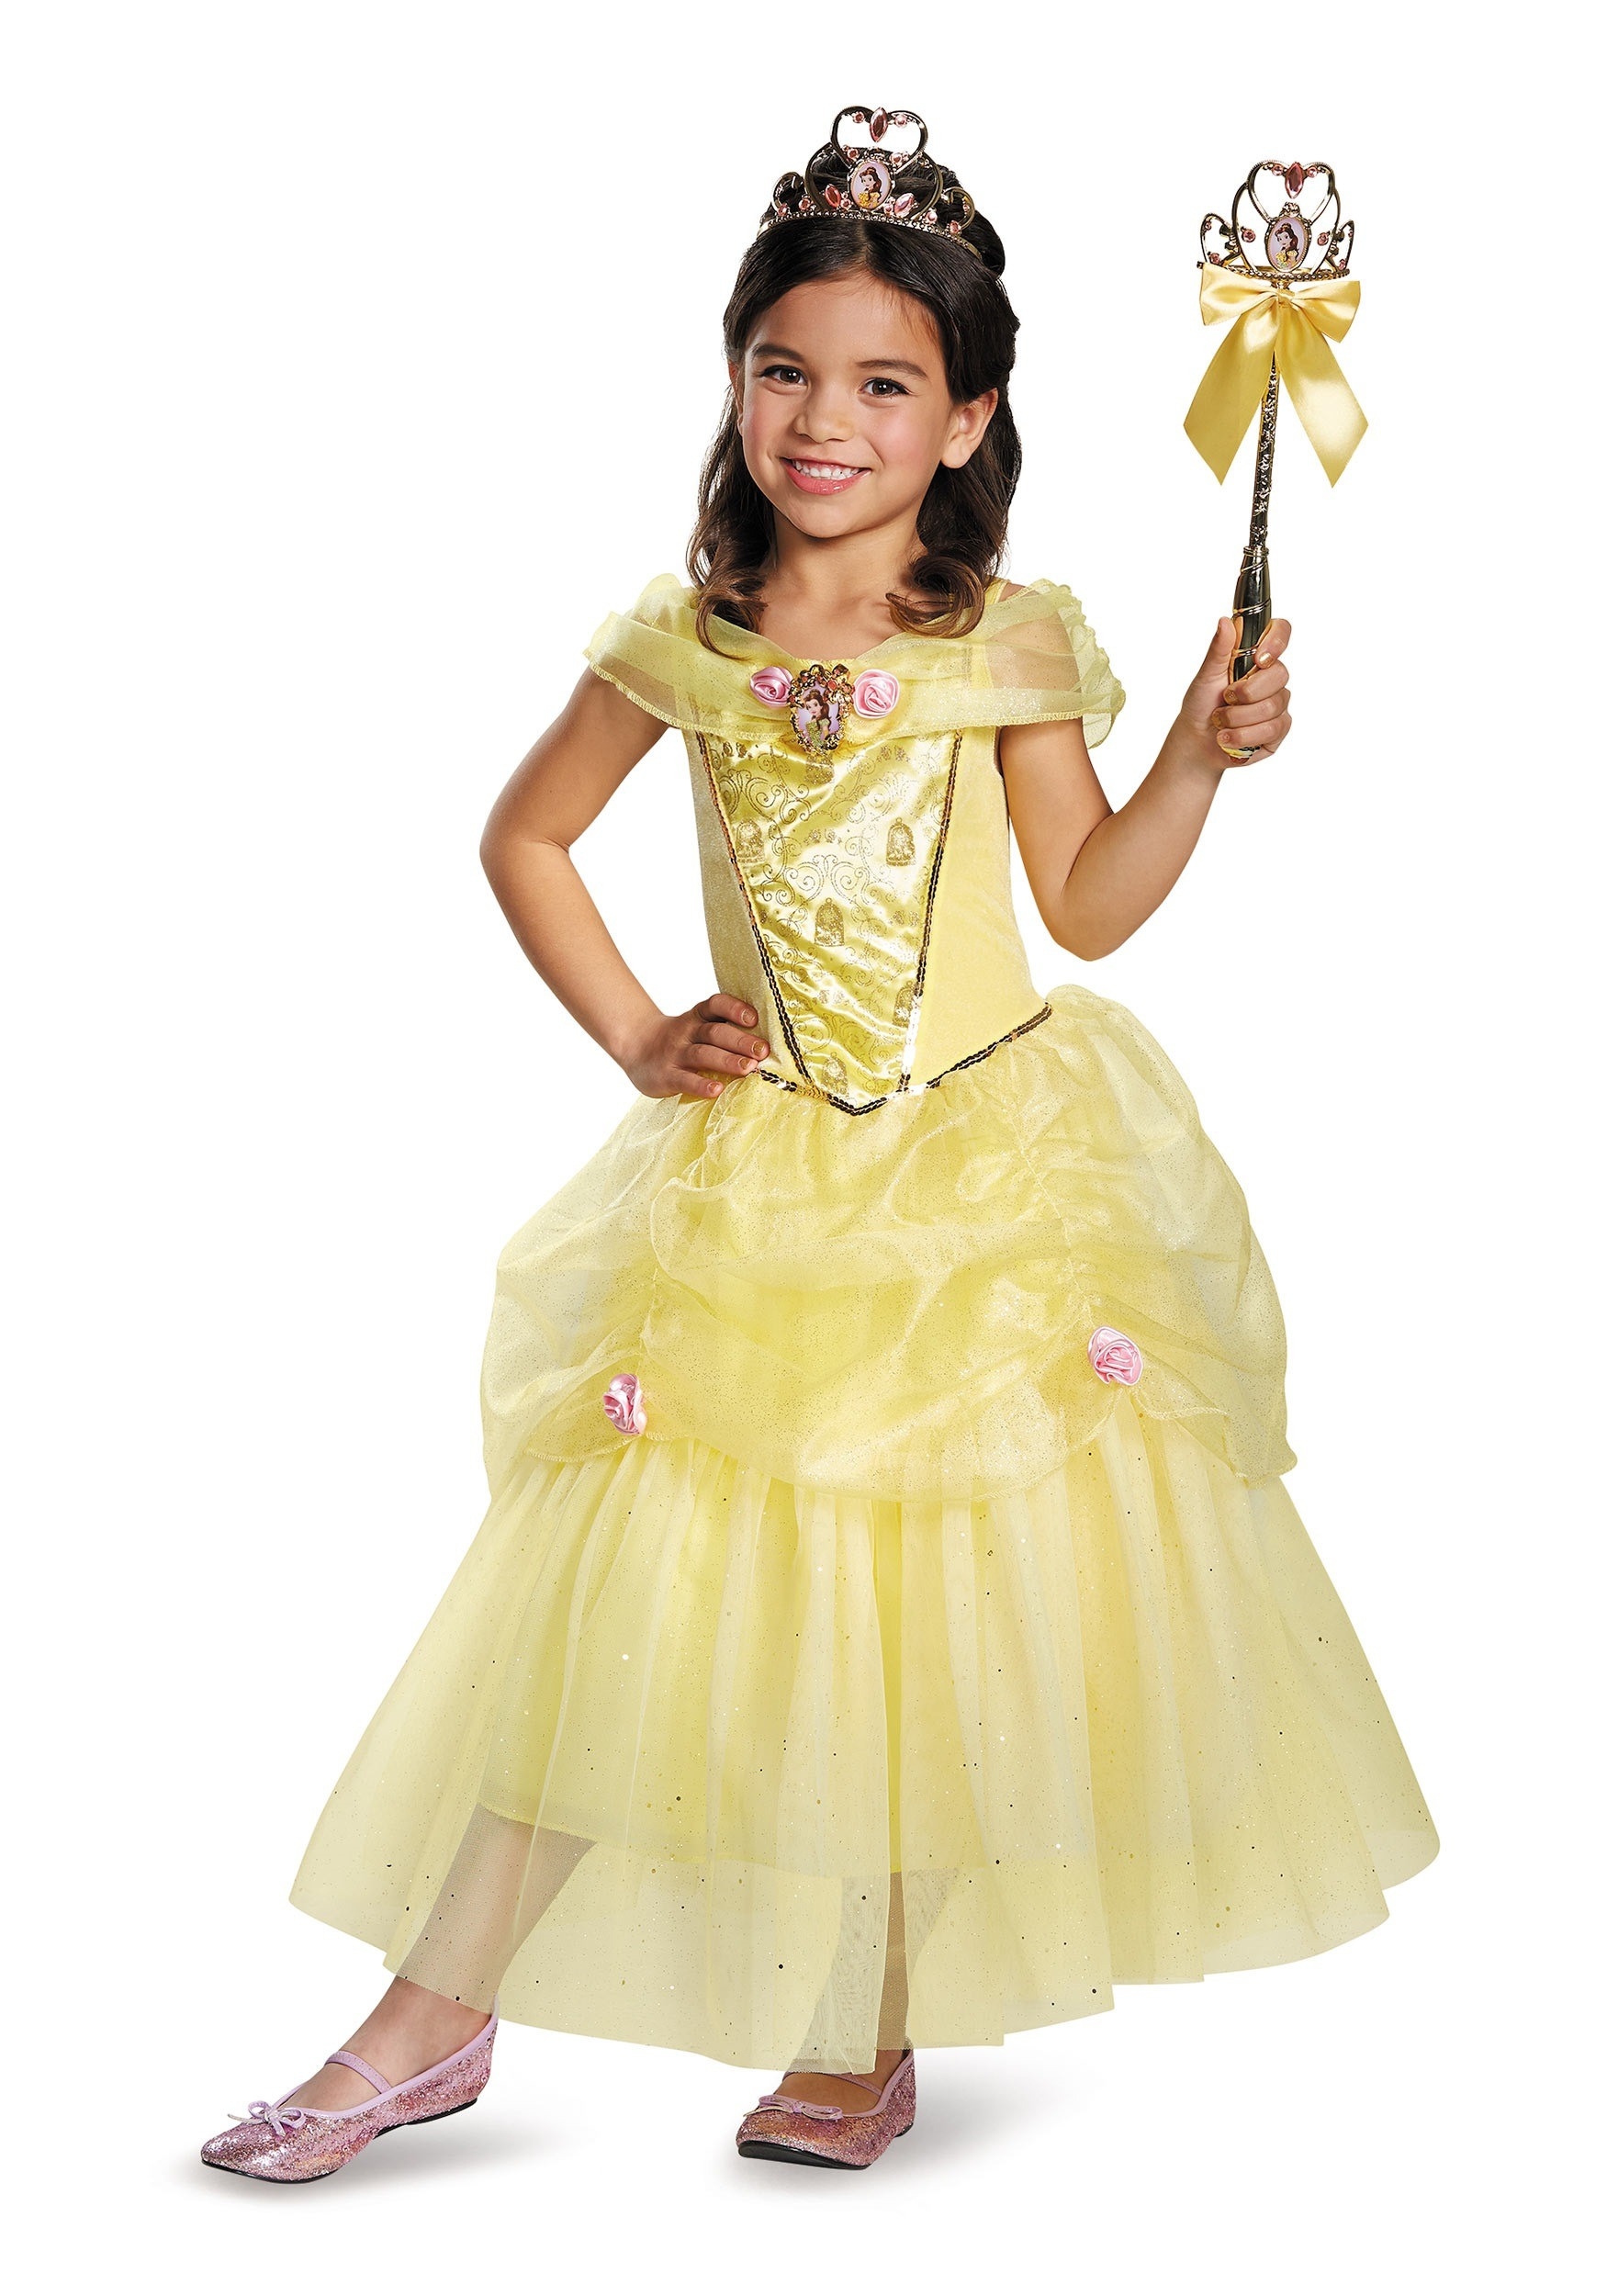 Results 61 - 120 of 1752 for Halloween Costumes for Girls